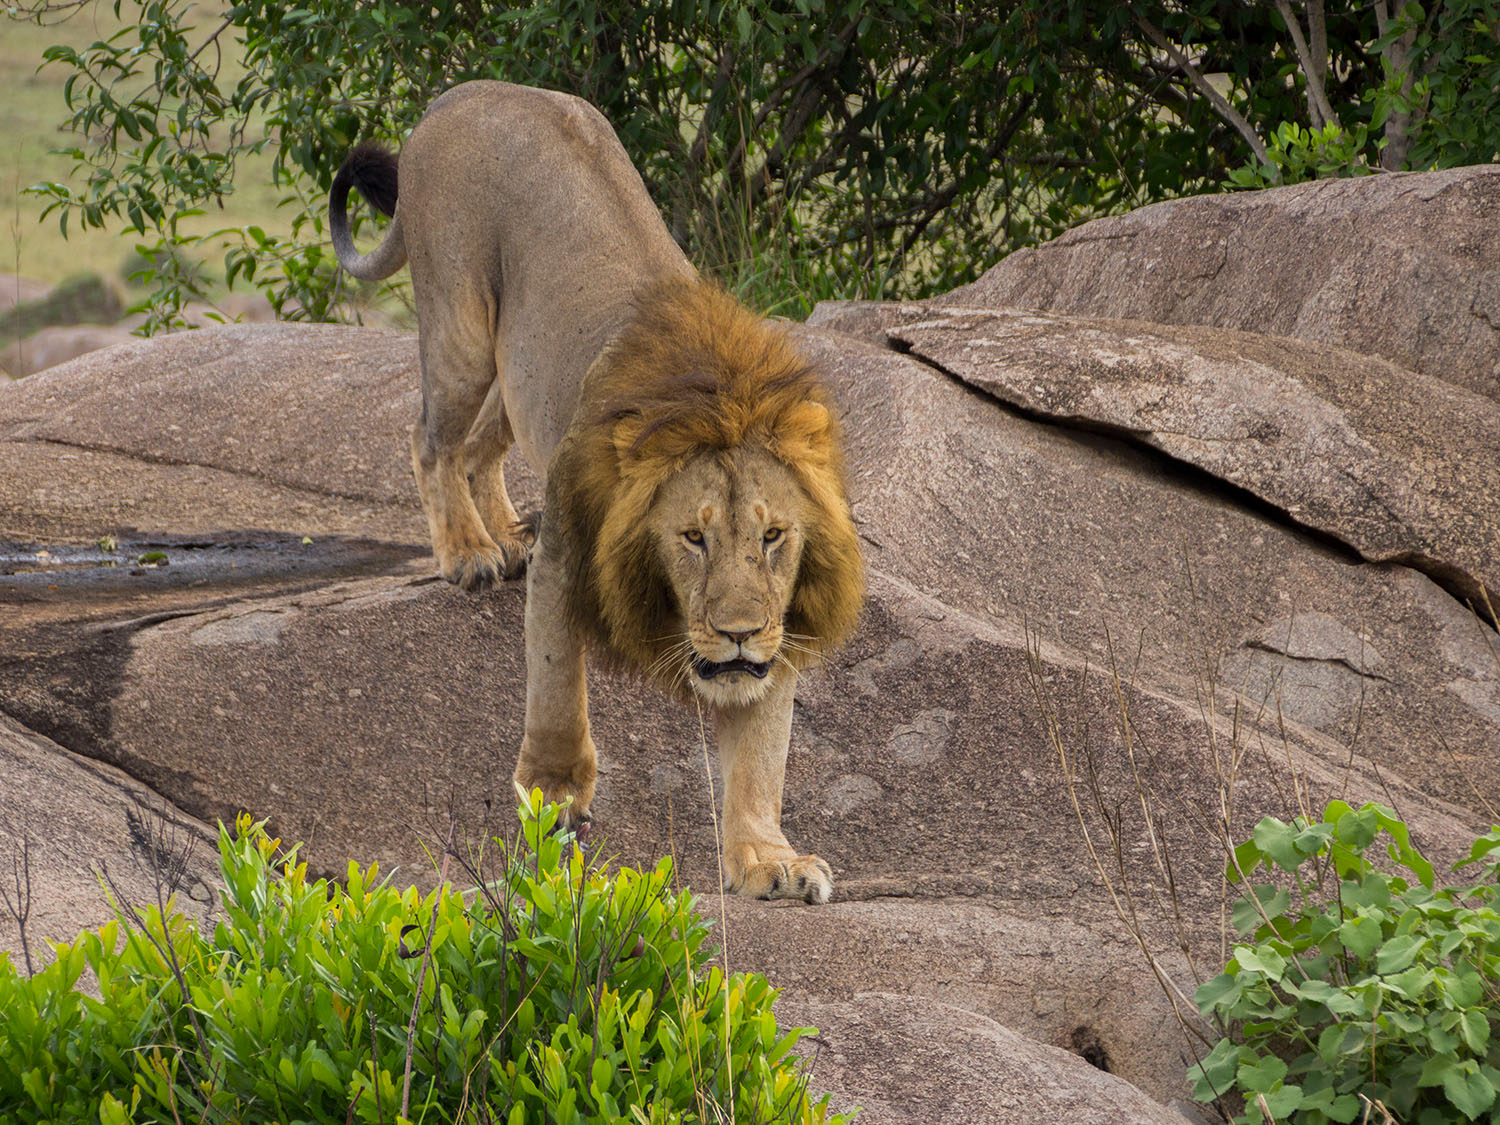 African Big Cats Photographic Safari